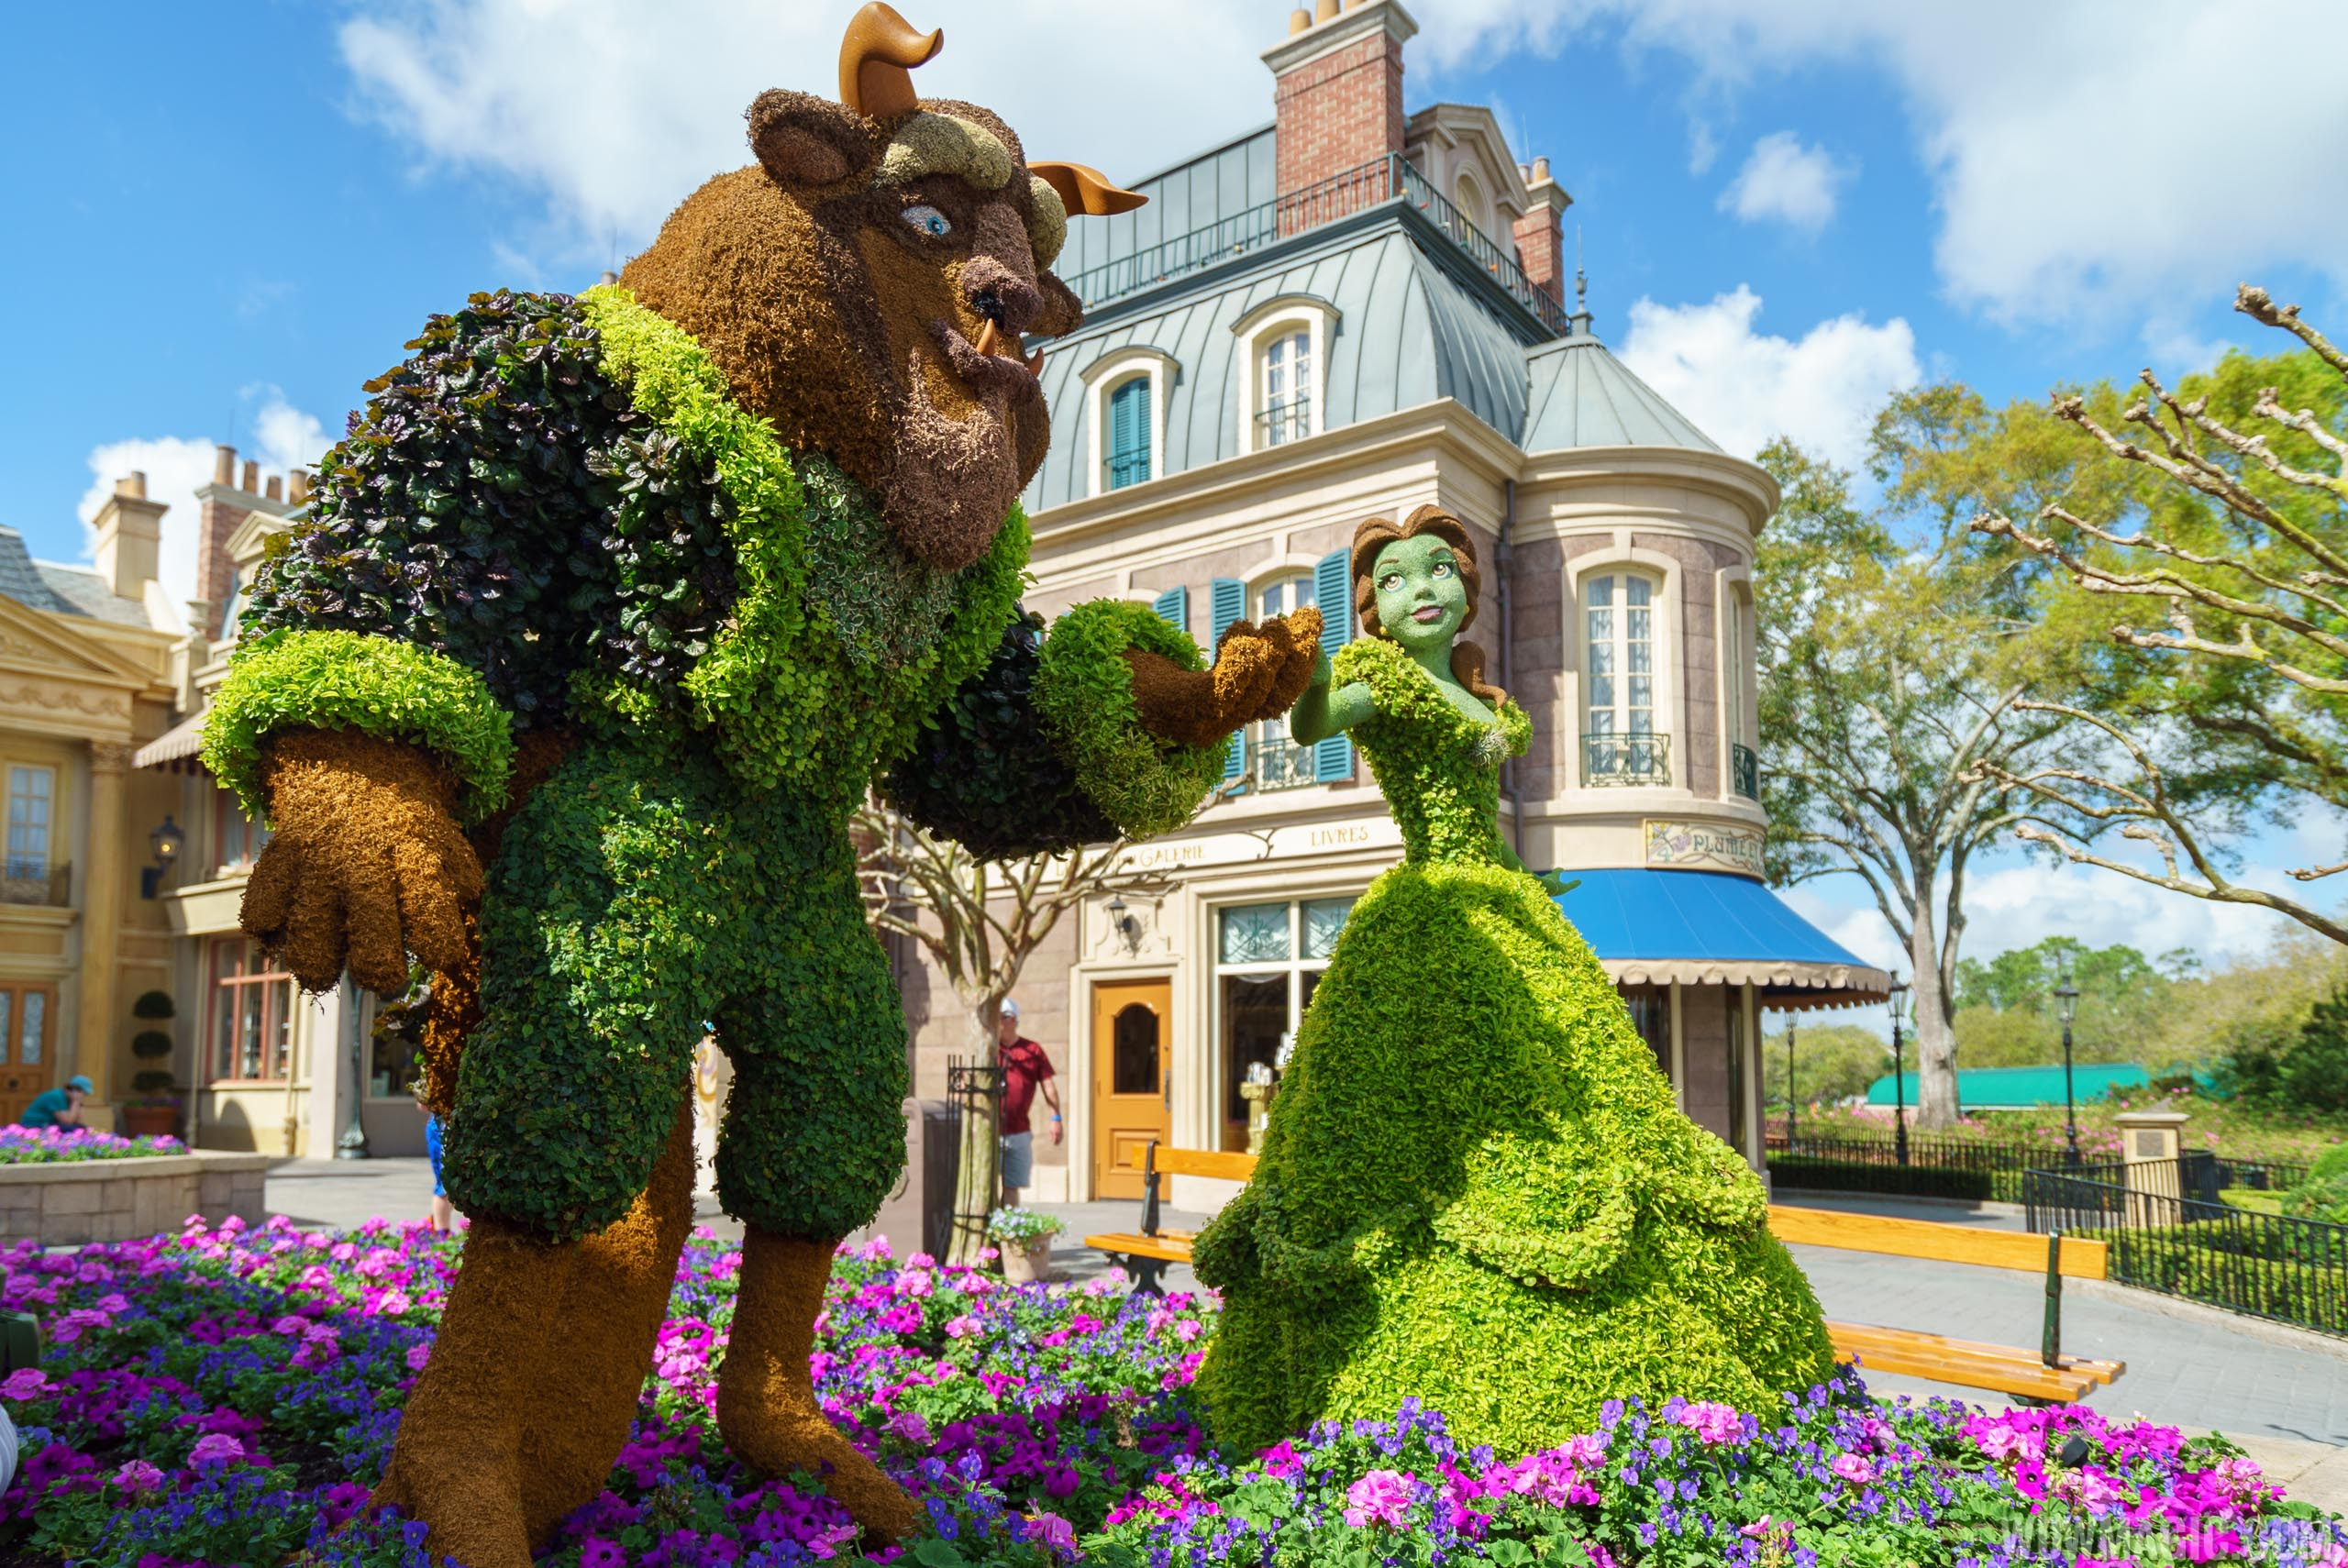 2017 Flower and Garden Festival - Belle and Beast topiaries at the France Pavilion